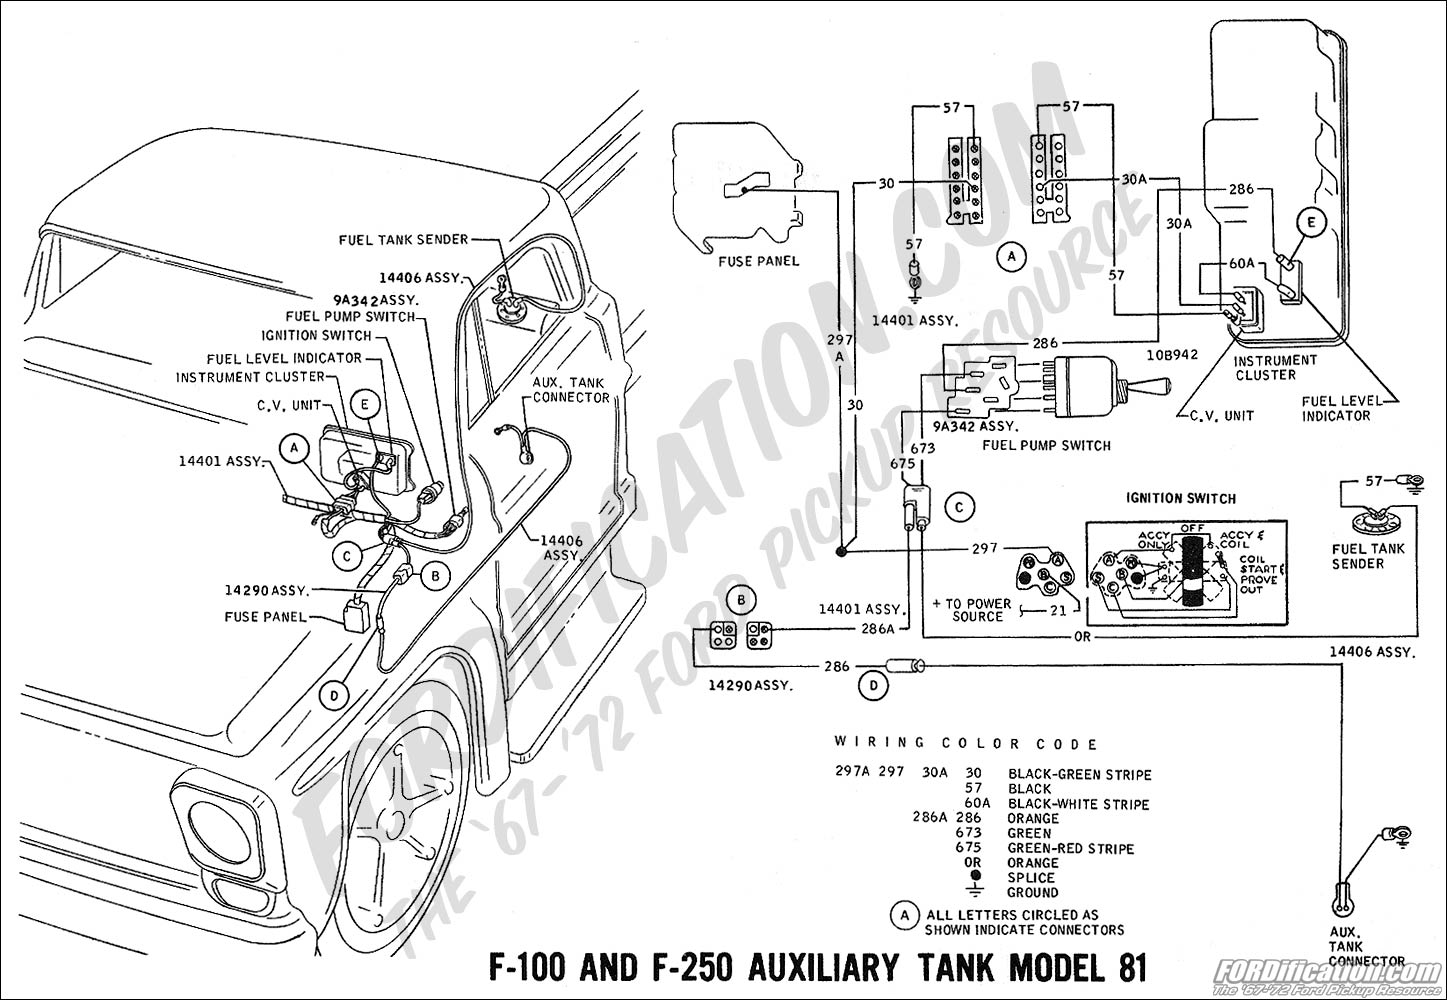 1969 ford pickup fuse box 1997 ford pickup fuse box ford truck technical drawings and schematics - section h ...